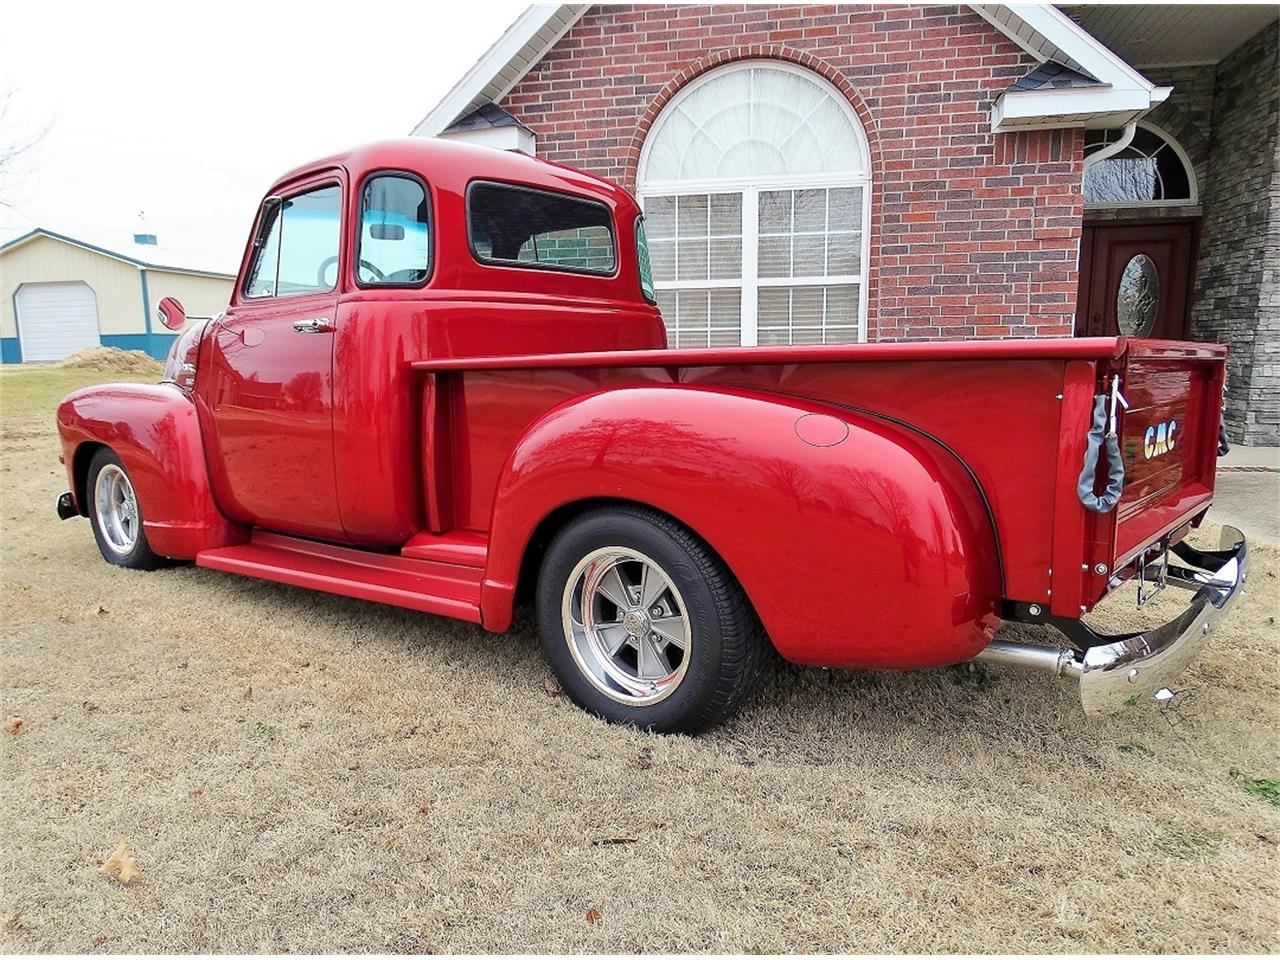 Large Picture of Classic 1954 GMC Pickup located in Arkansas - $54,900.00 - N8MG